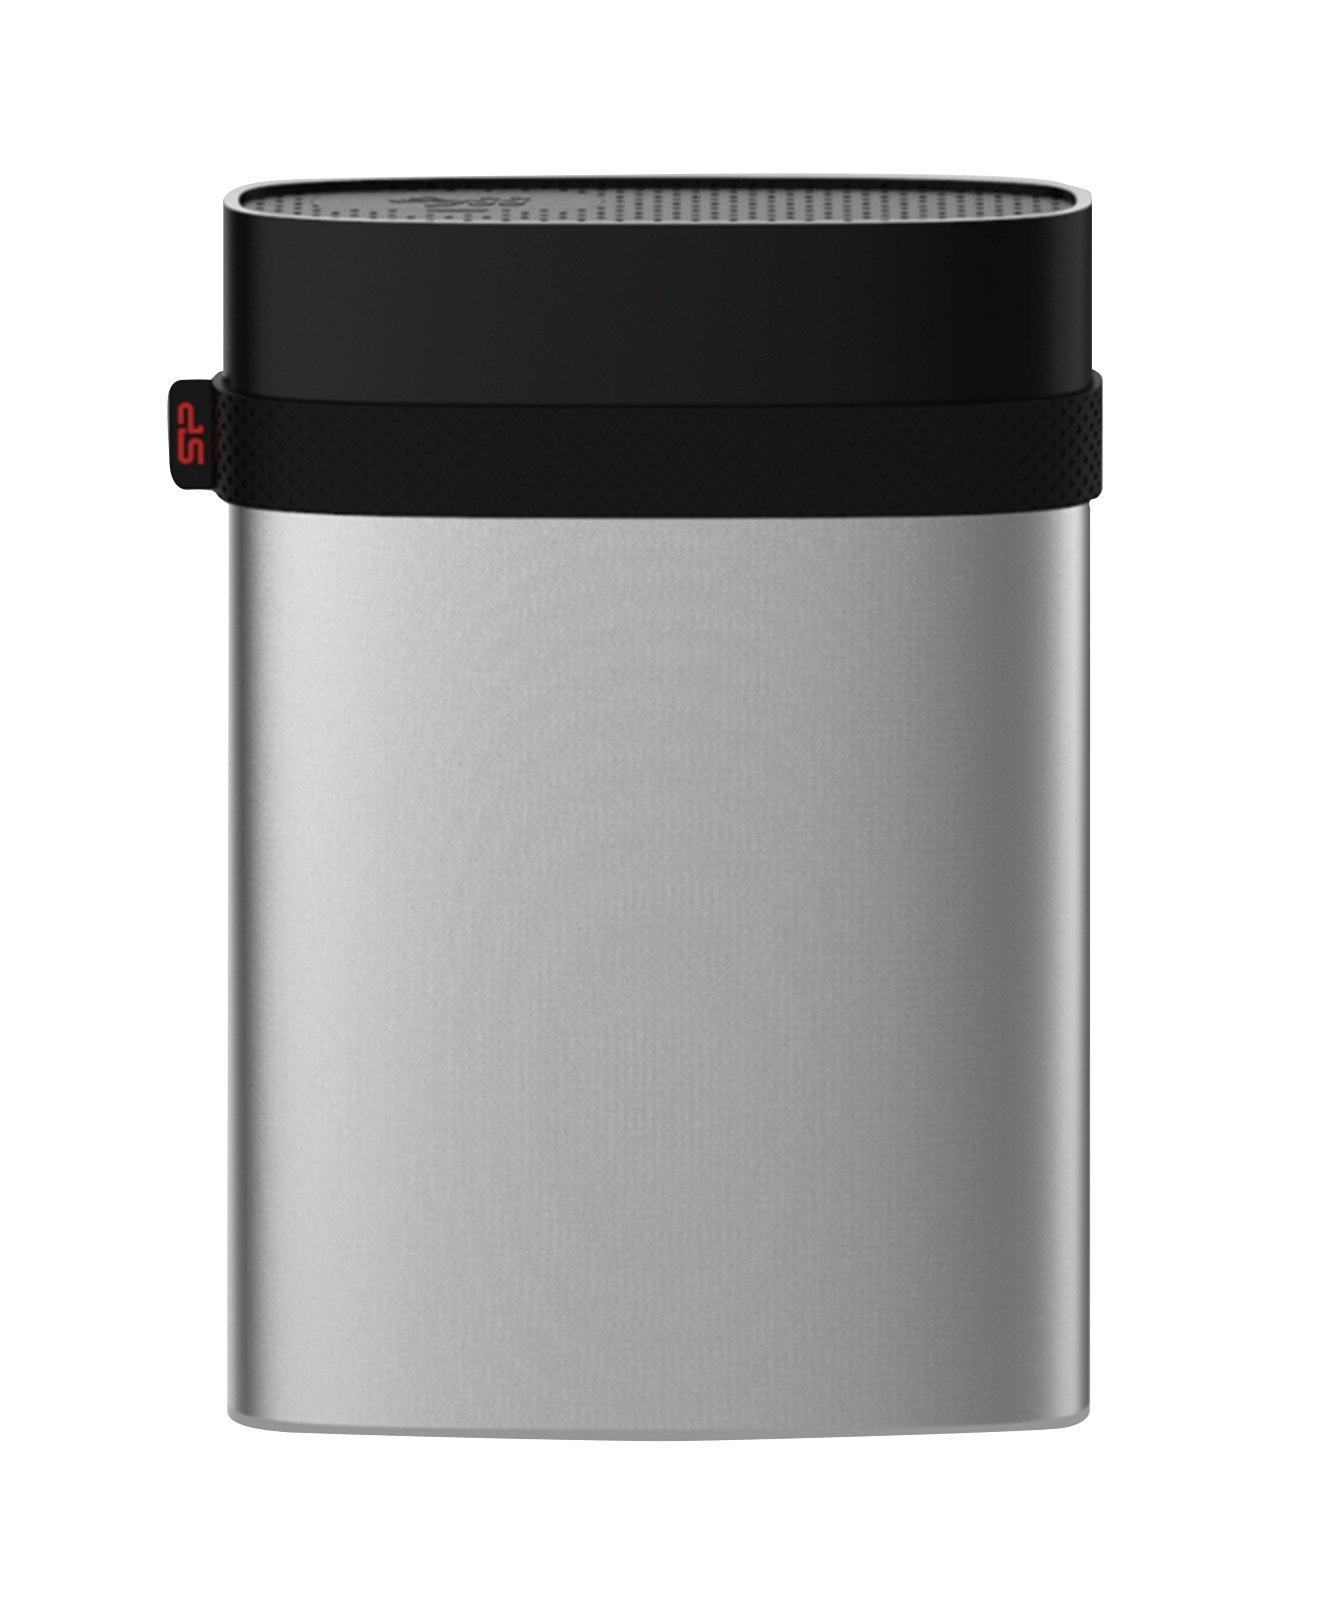 2TB Silicon Power Armor A85 Silver USB3.0 Rugged Portable Hard Drive by Silicon Power (Image #3)